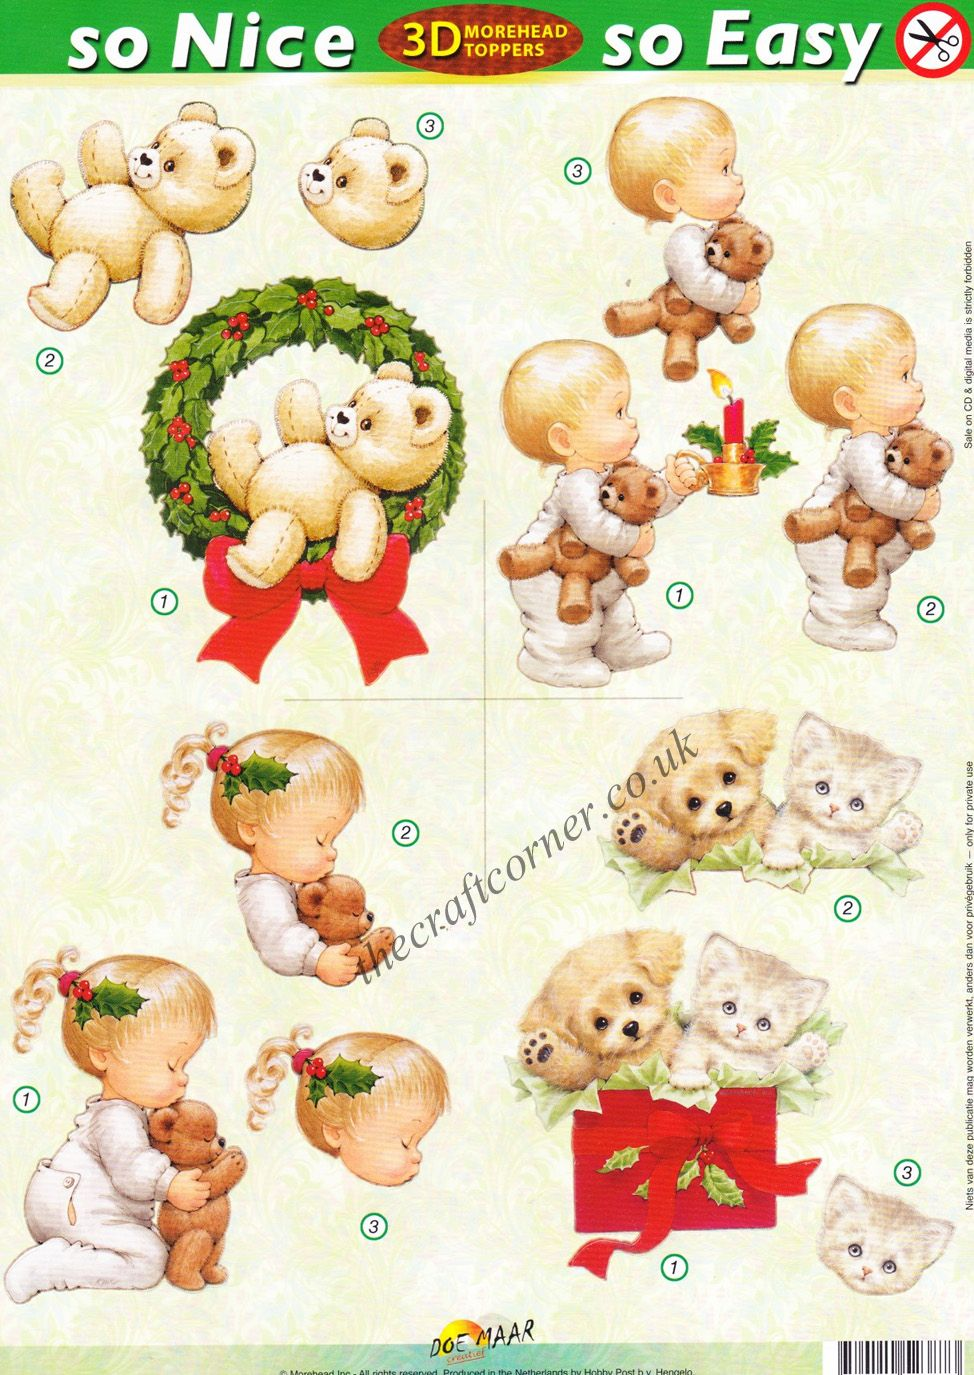 Christmas Children And Teddy Bears So Nice So Easy